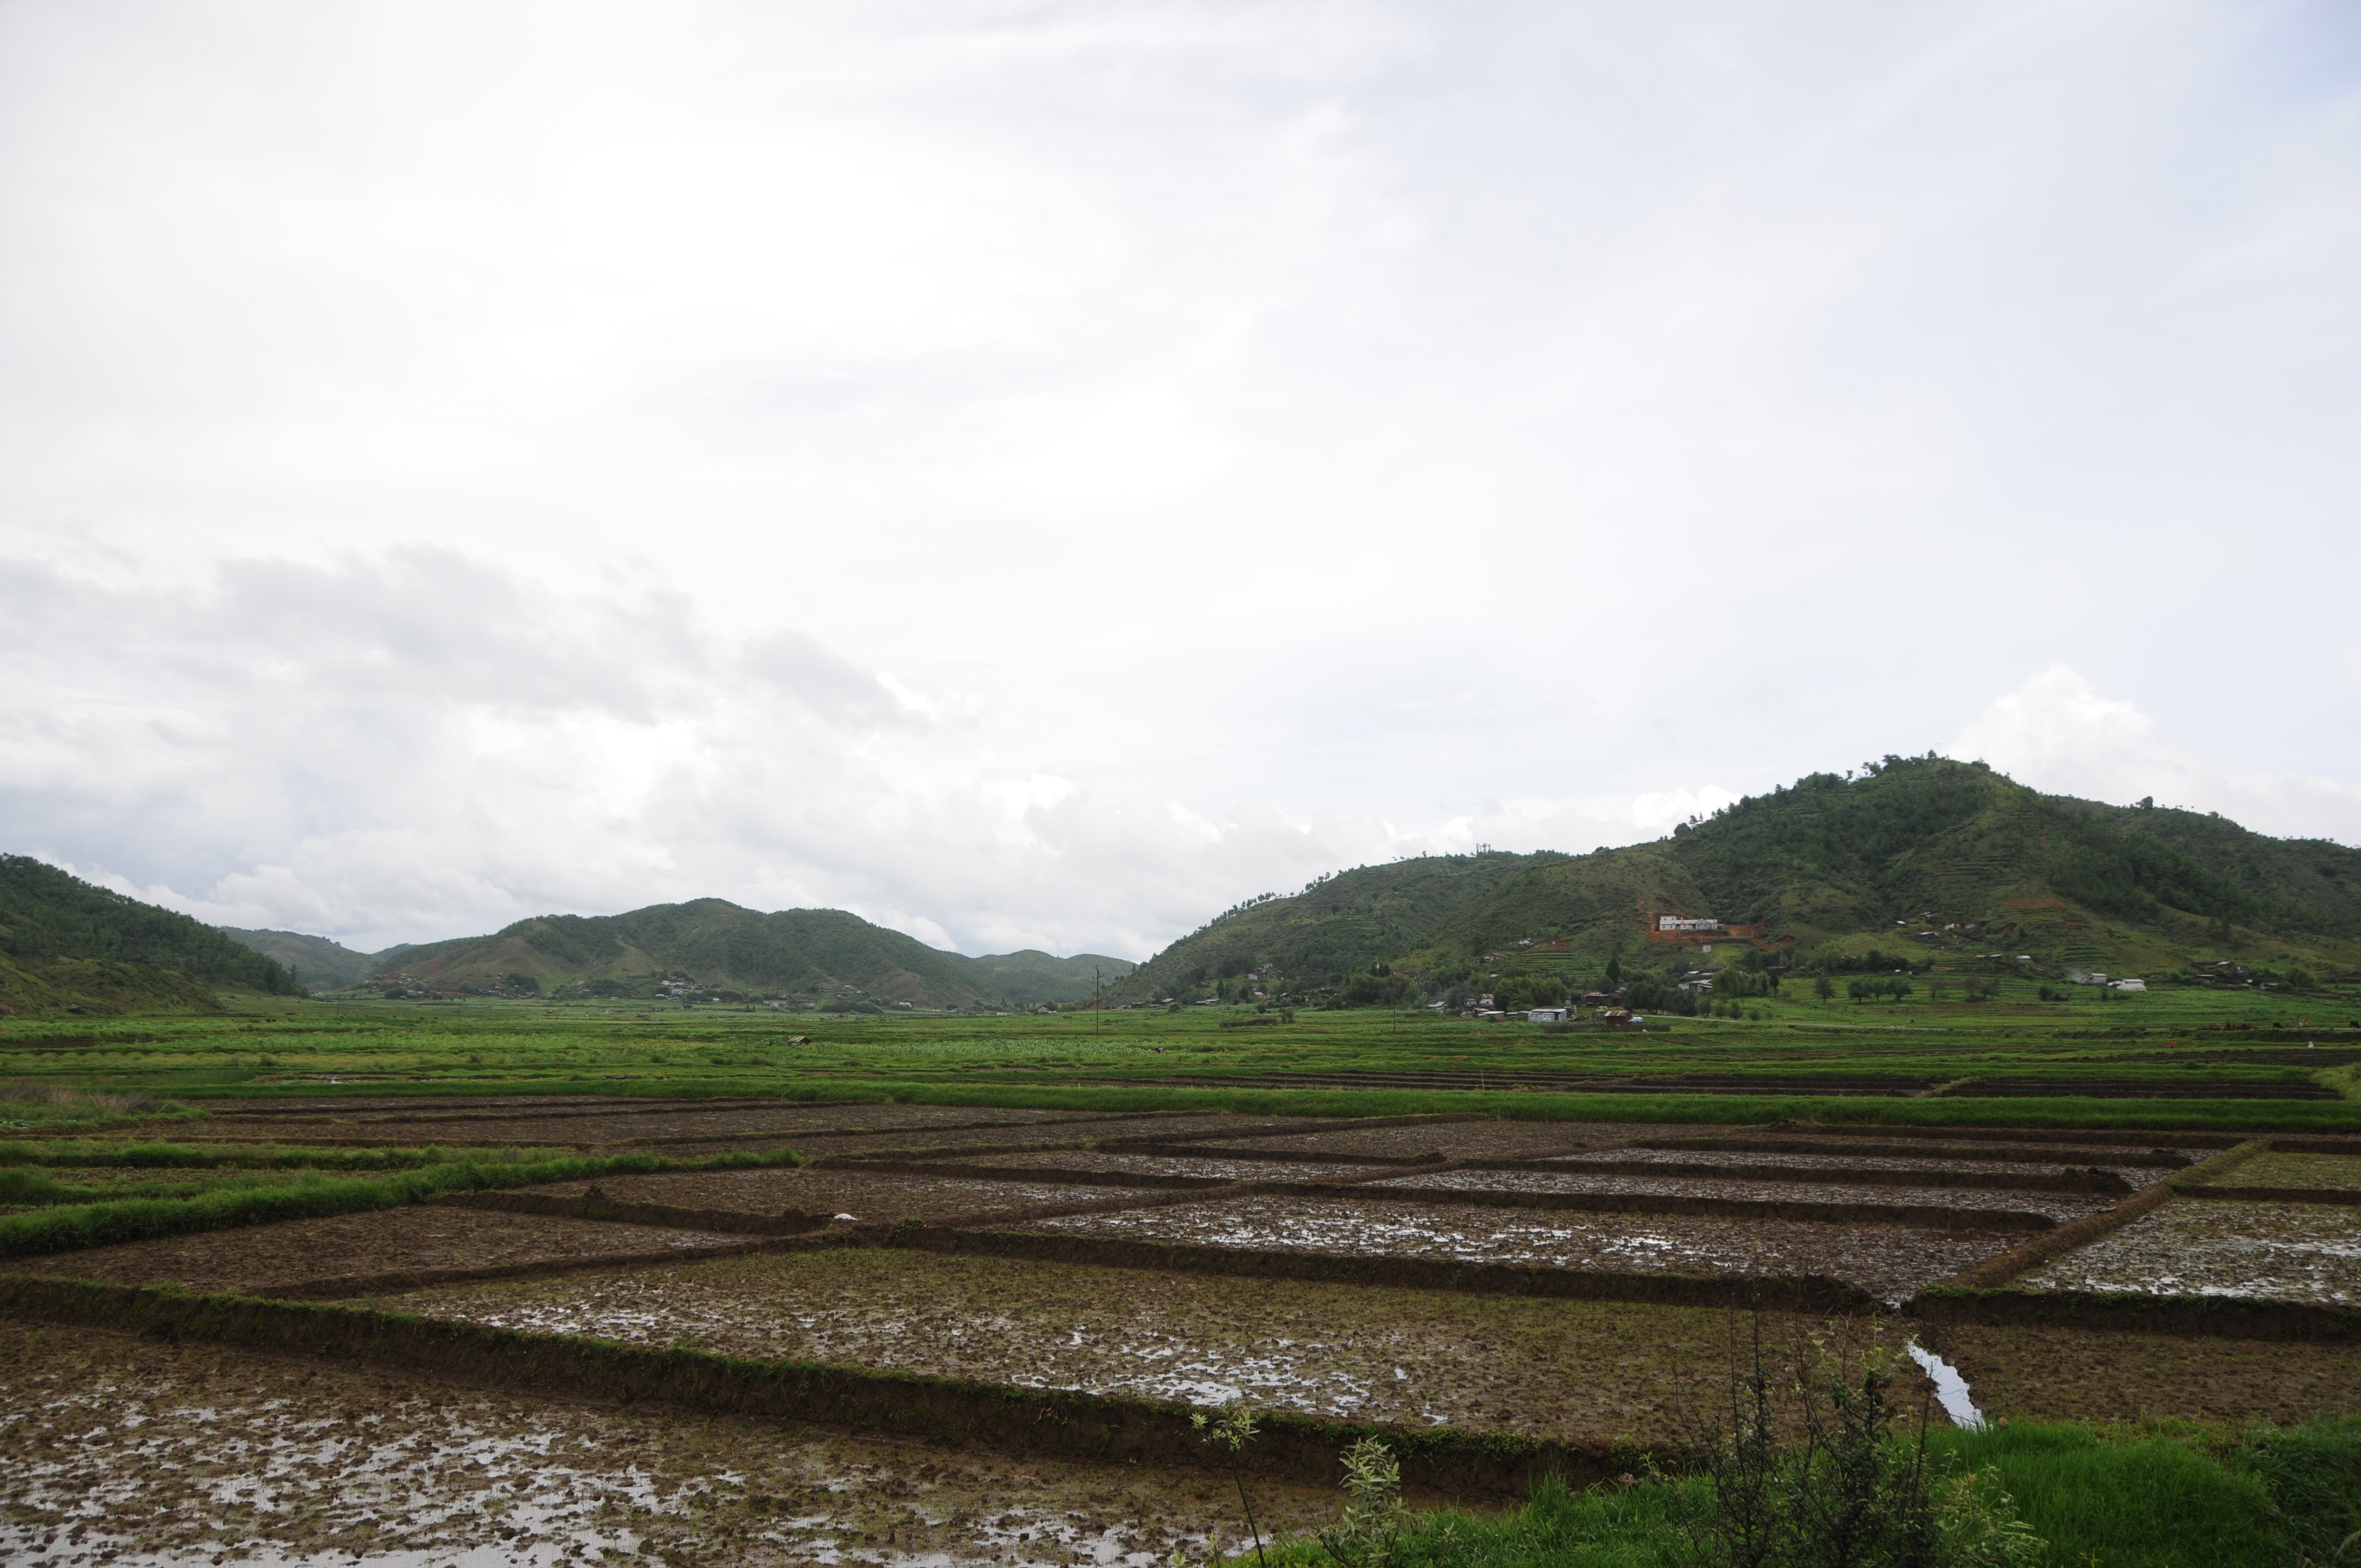 Agriculture in Meghalaya. Photo credit: Sharada Prasad CS/Wikimedia Commons [Licensed under CC BY 2.0]